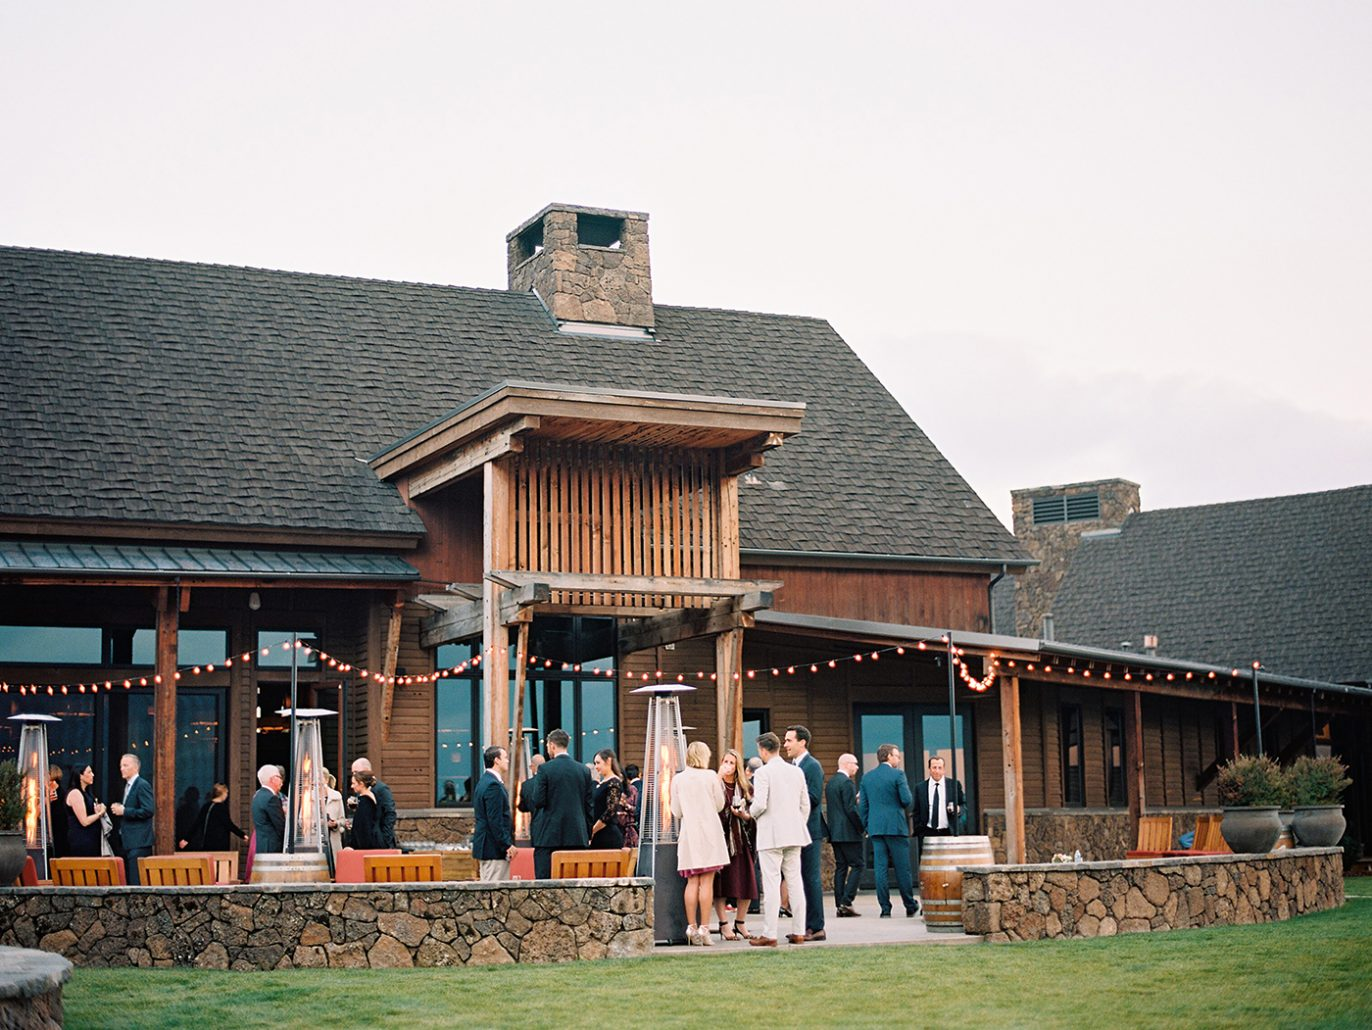 Wedding reception in Central Oregon